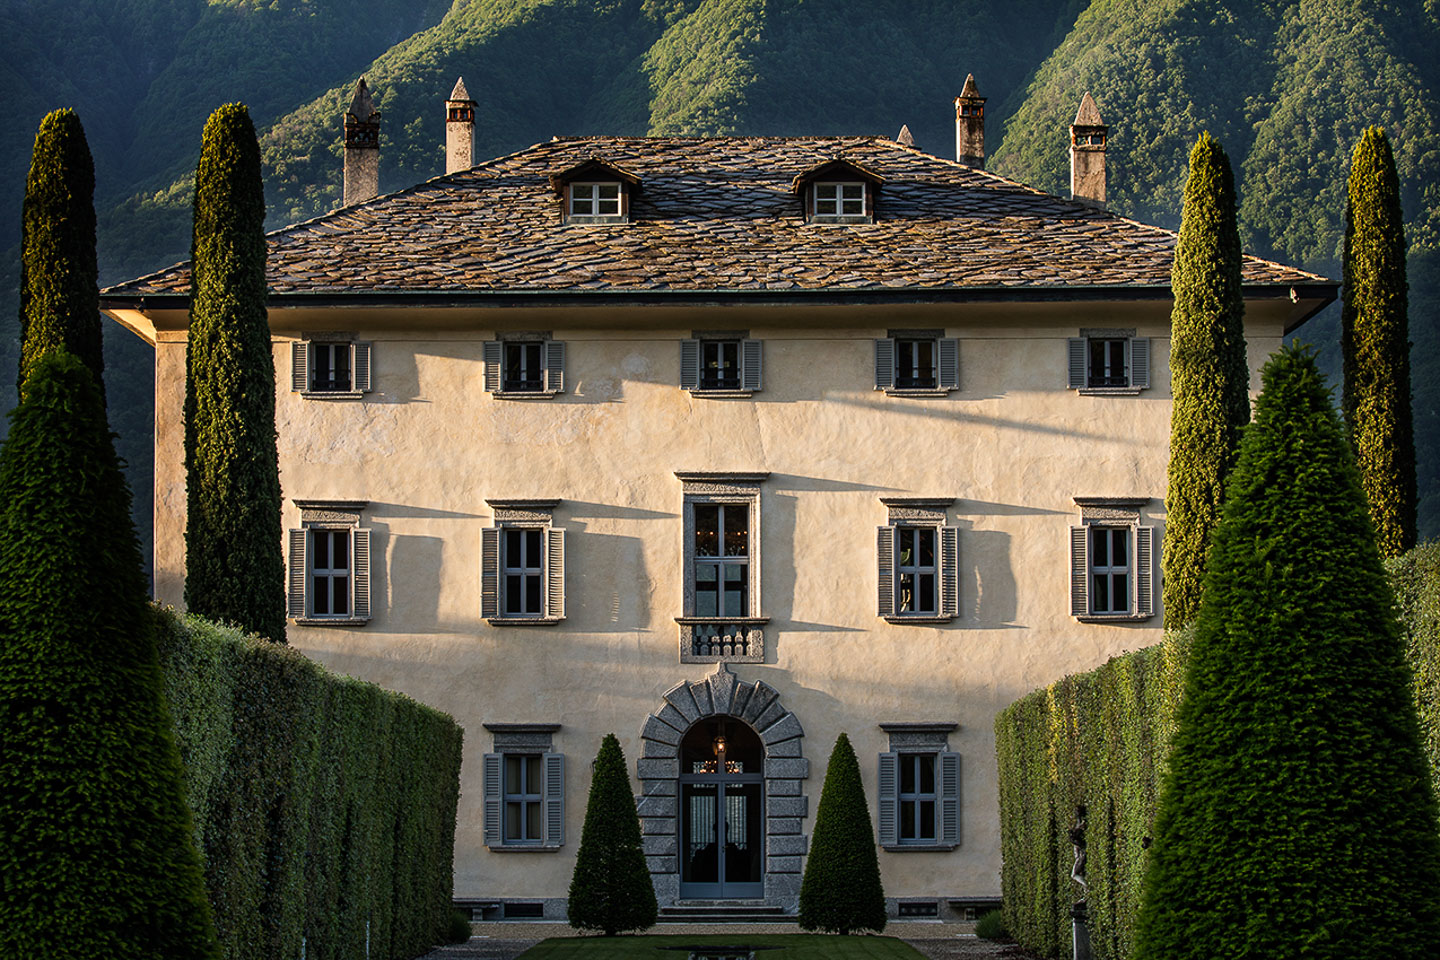 Villa Balbiano luxury property Lake Como Milan best wedding event venue available private exclusive rent rental 4 floor mansion best interiors suite bedroom netween mountain and water